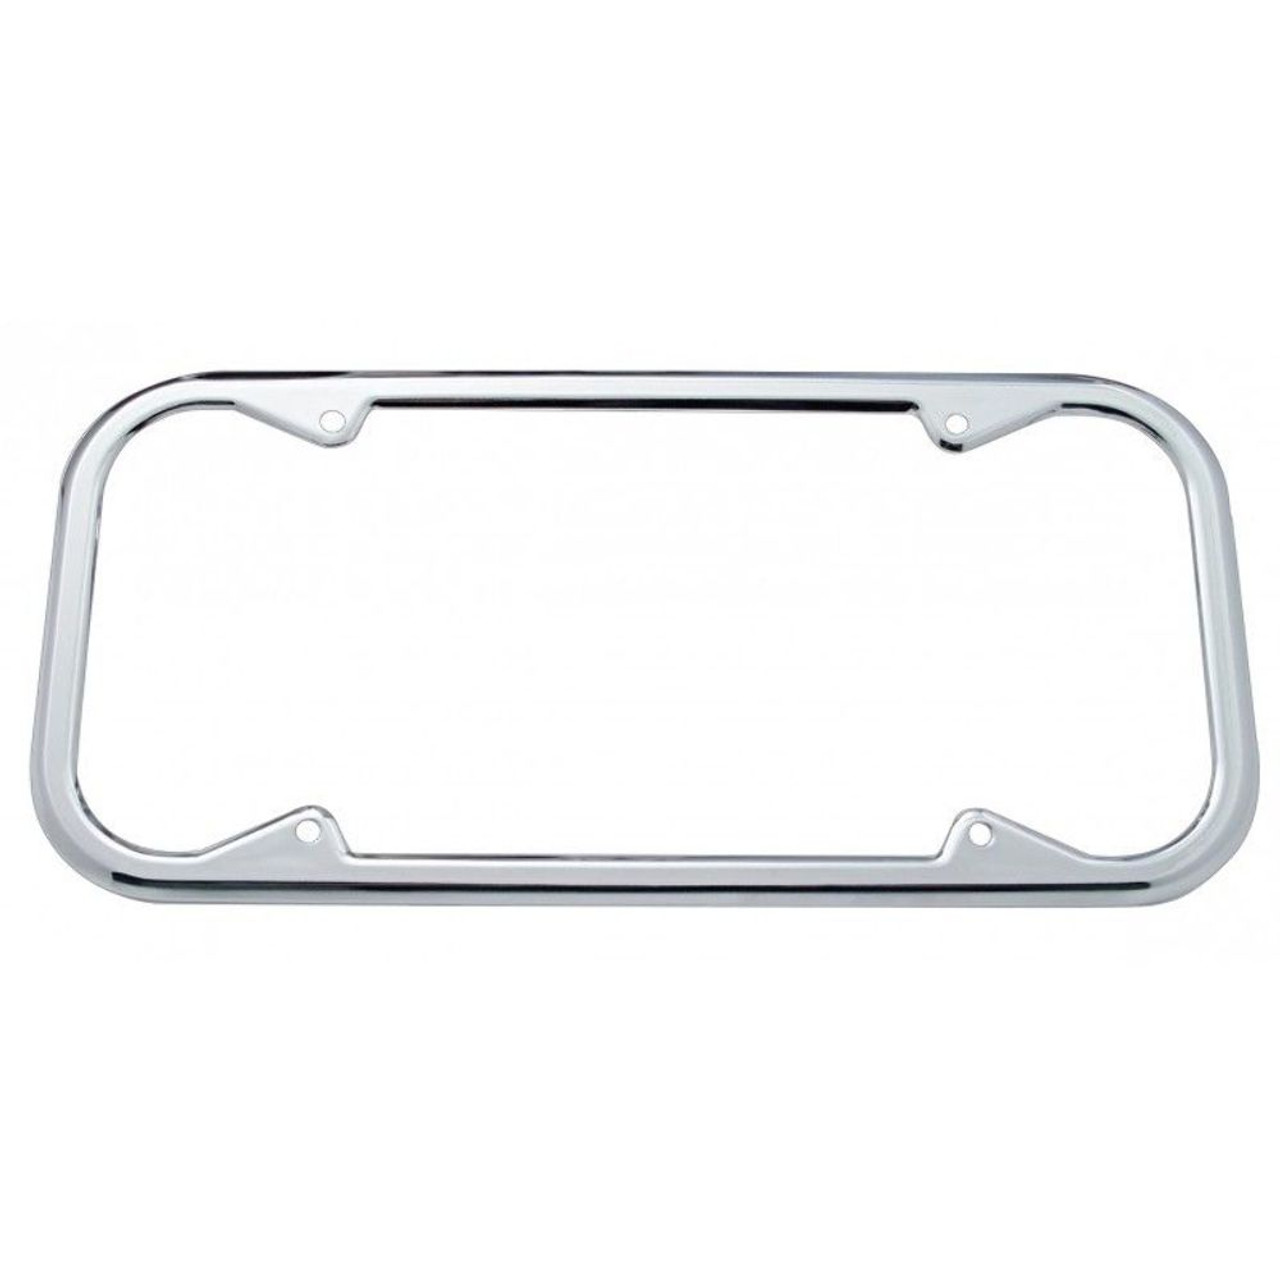 Chrome 1940-55 Round Corner California License Plate Frames